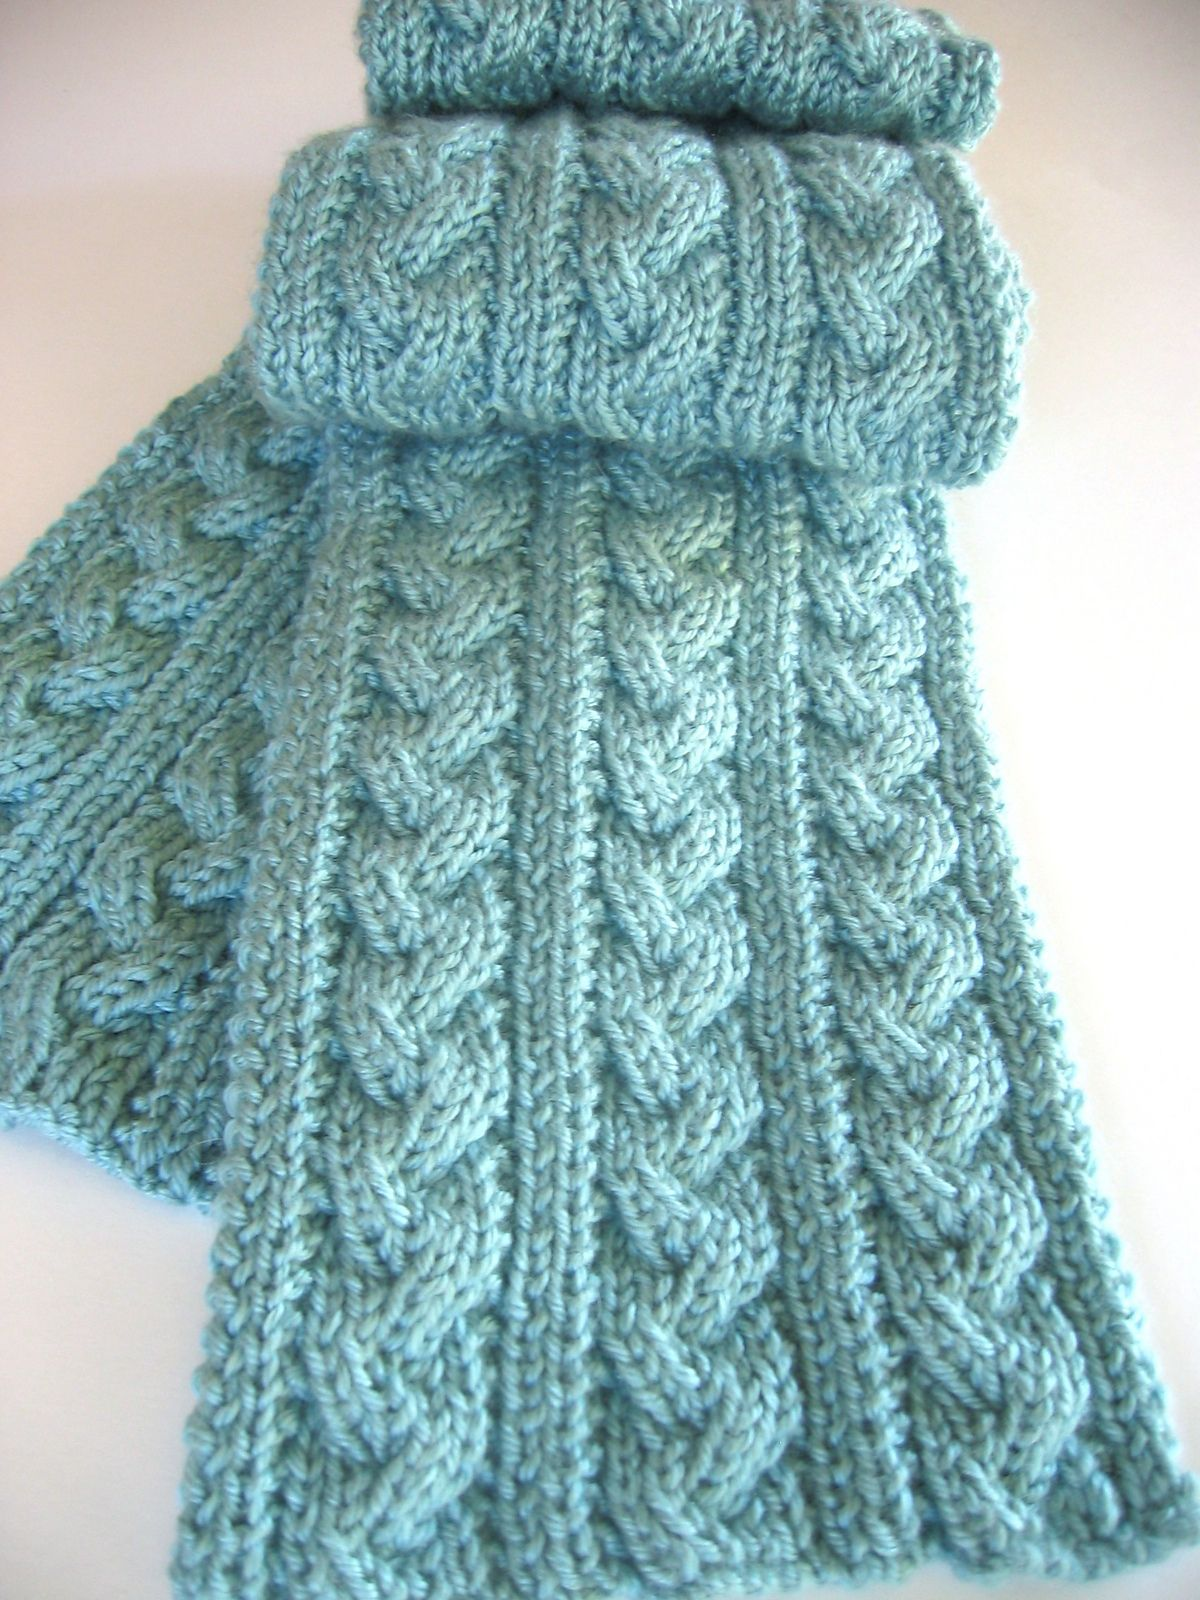 Ravelry braid cable reversible hiking scarf by jeanna quinones reversible cable free knitting pattern for braided cable scarf and more scarf knitting patterns bankloansurffo Image collections